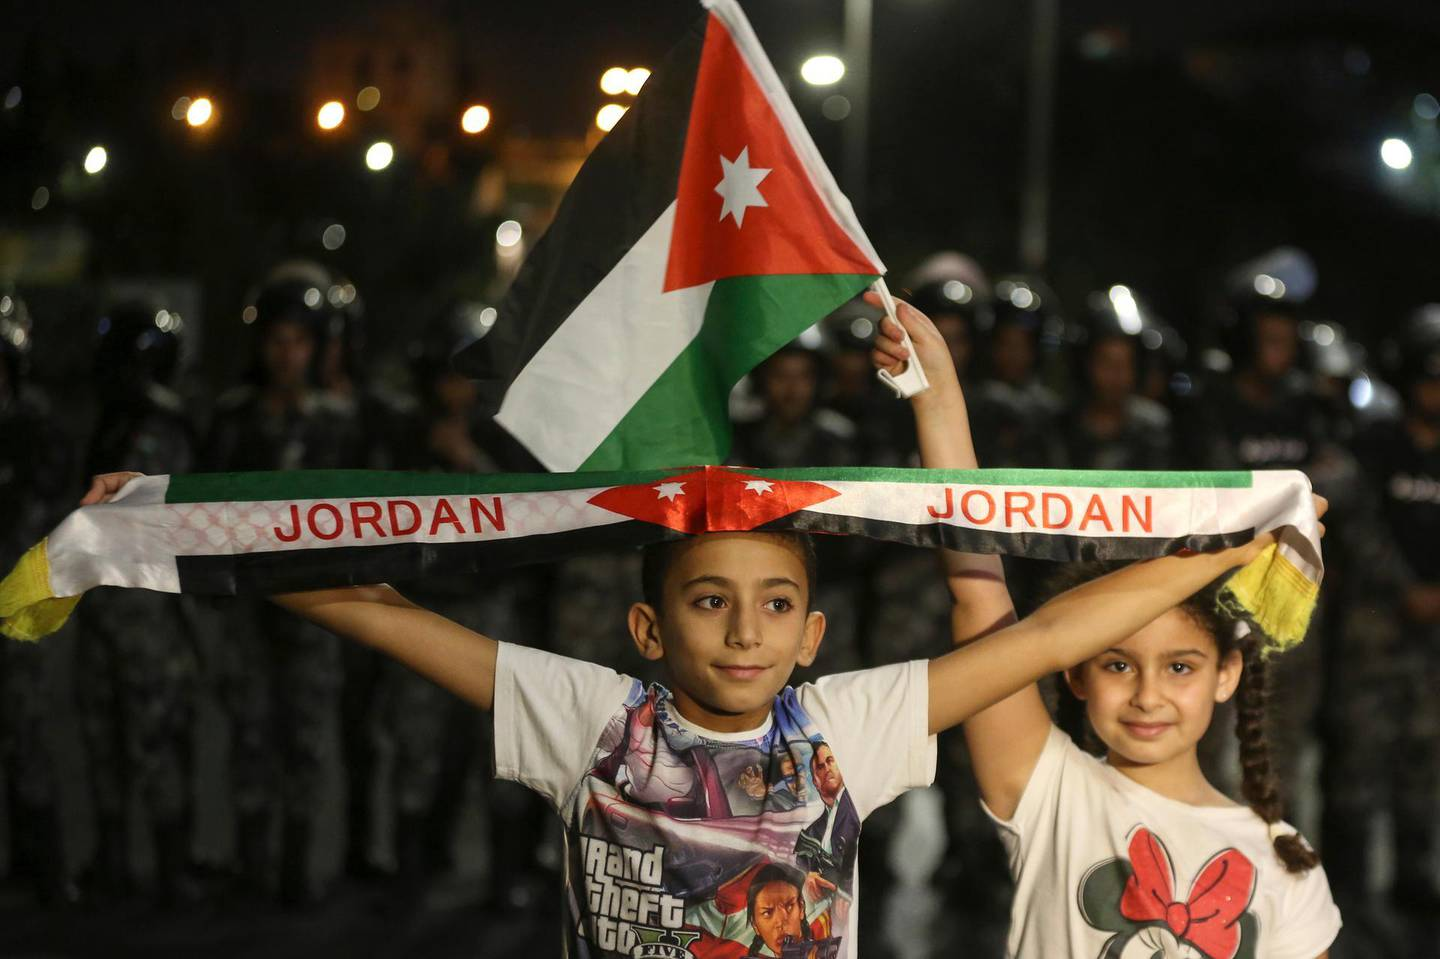 A girl and a boy hold a Jordanian flag and banner during a demonstration outside the Prime Minister's office in Amman, early Tuesday, June 6, 2018. Jordan's King Abdullah II on Tuesday appointed a new prime minister, the royal palace said, naming a leading reformer as head of government in hopes of quelling the largest anti-government protests in recent years.(AP Photo/Raad al-Adayleh)